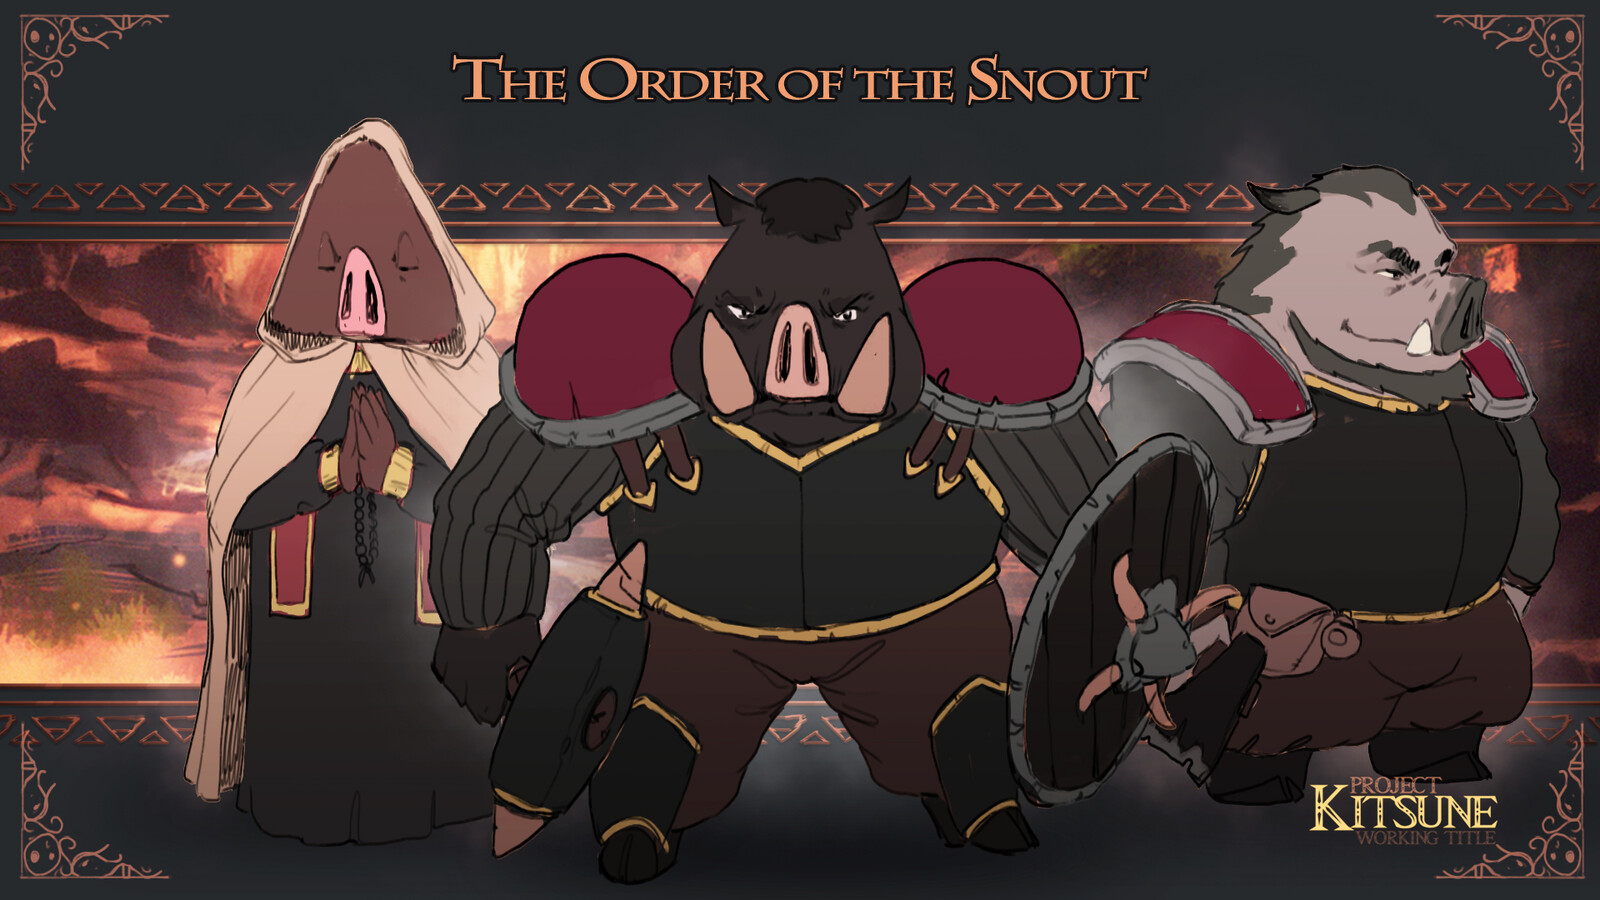 Concepts for 'The Order of the Snout', a group of religious fanatic boars.